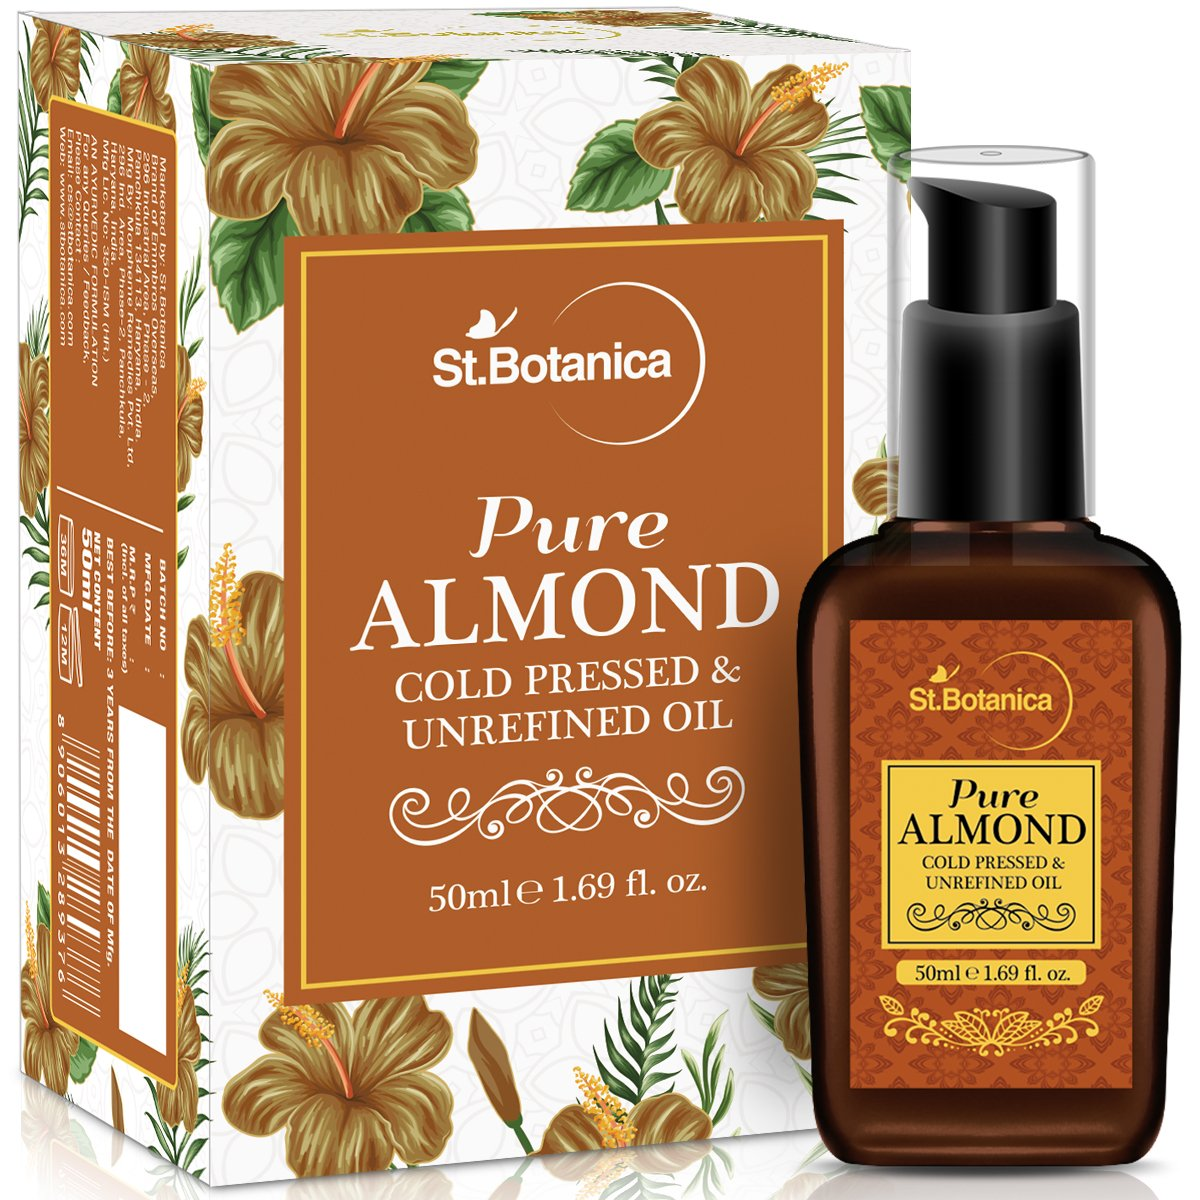 StBotanica Pure Sweet Almond Coldpressed Oil, 50ml (For Hair & Skin) product image